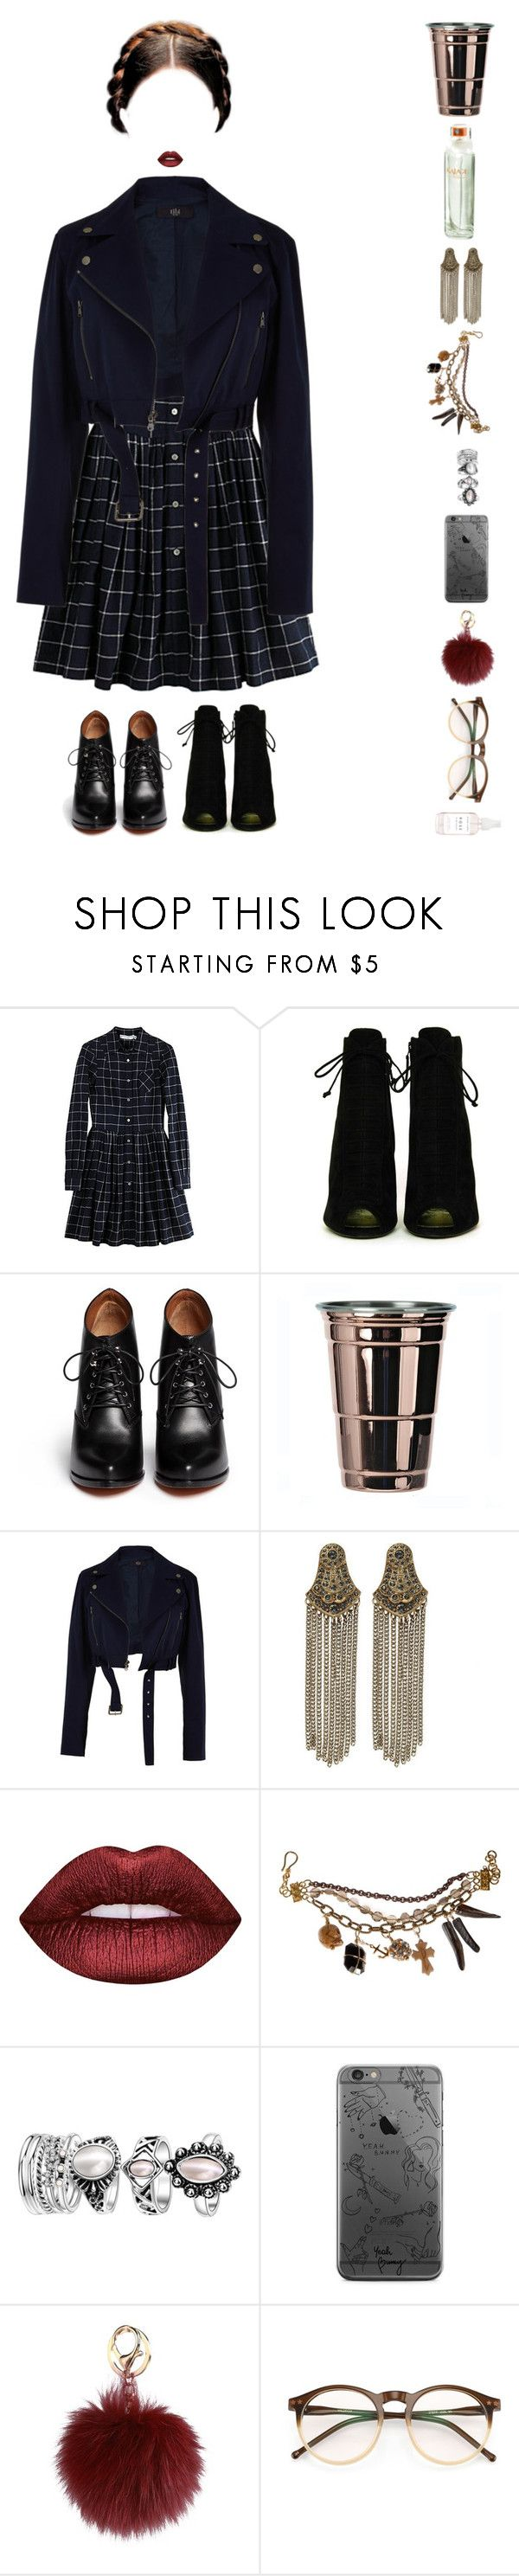 """LOLL"" by anaalsan ❤ liked on Polyvore featuring Opening Ceremony, Tom Ford, Givenchy, TIBI, River Island, Lime Crime, Wildfox and Herbivore"